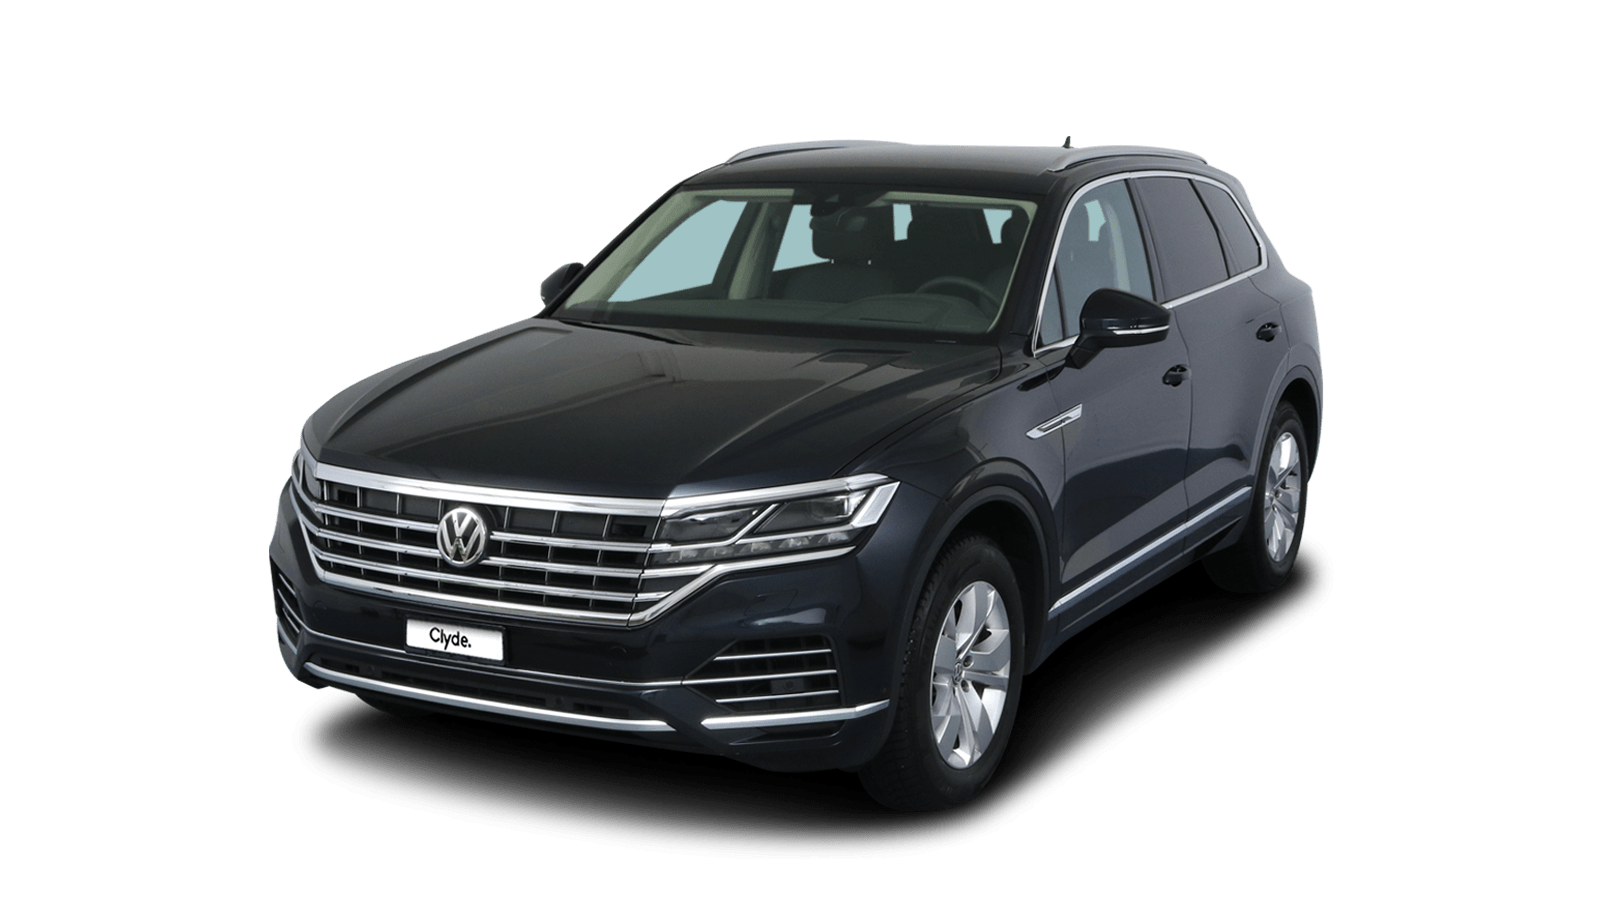 VW Touareg Blue front - Clyde car subscription